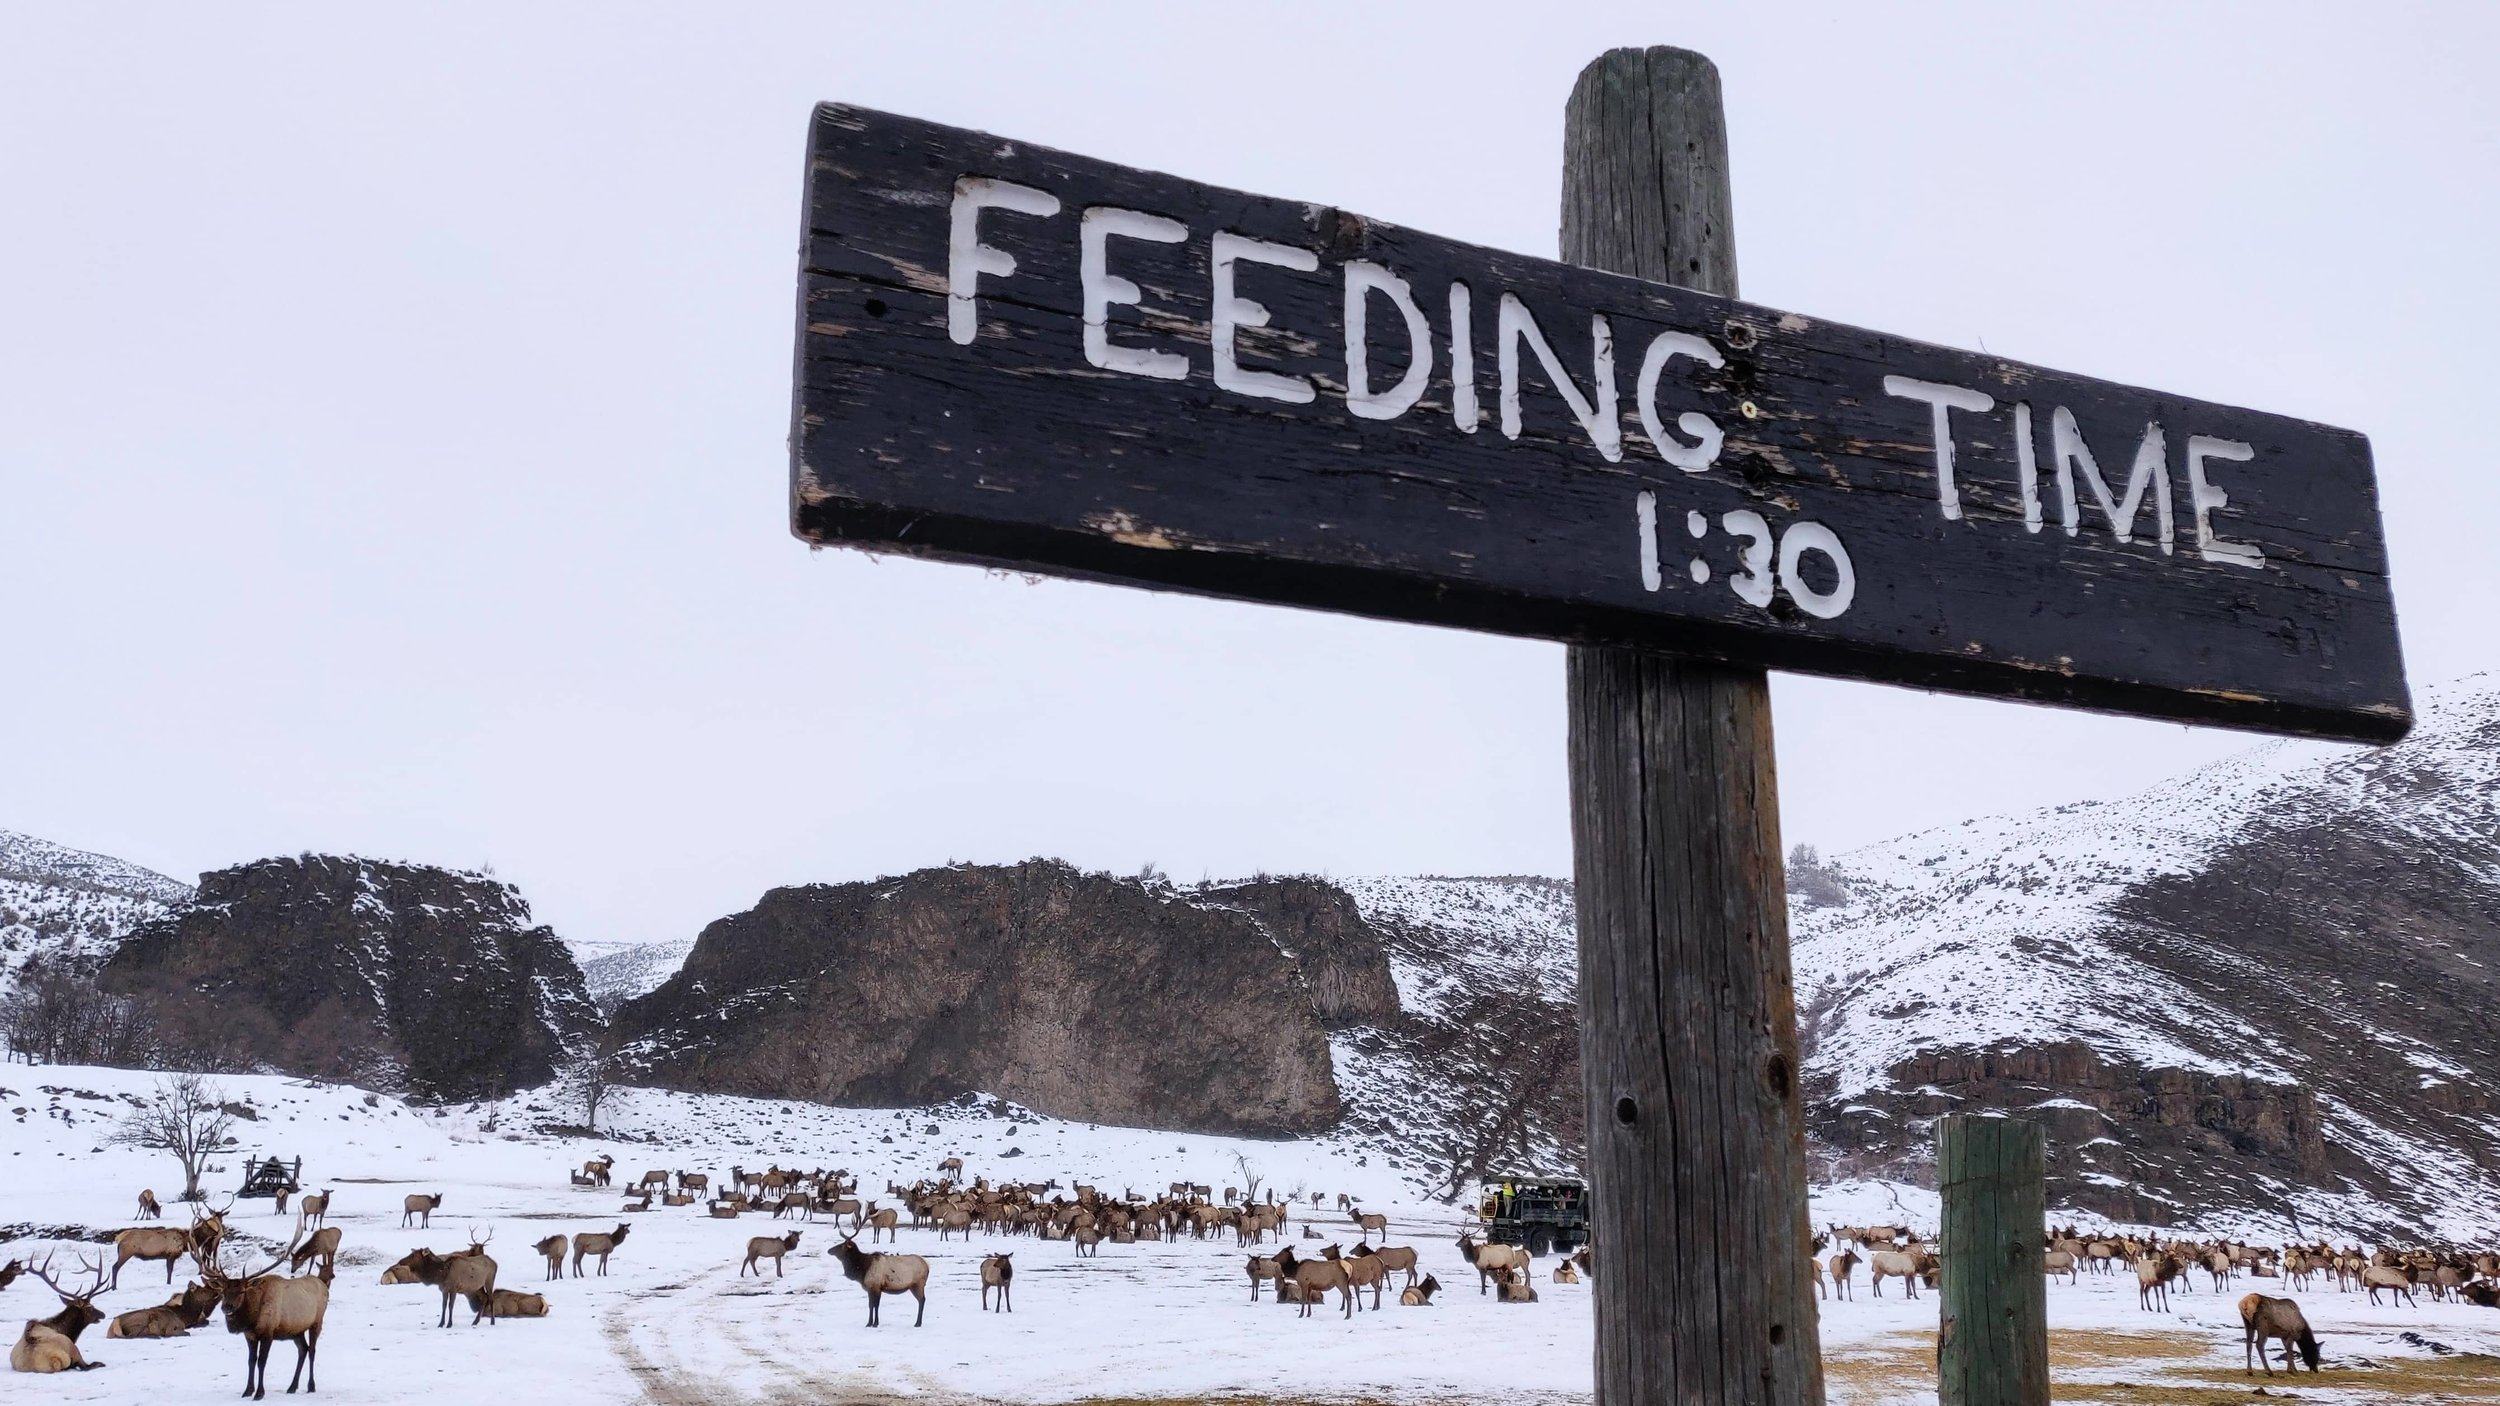 Feeding time is 1:30 for the elk